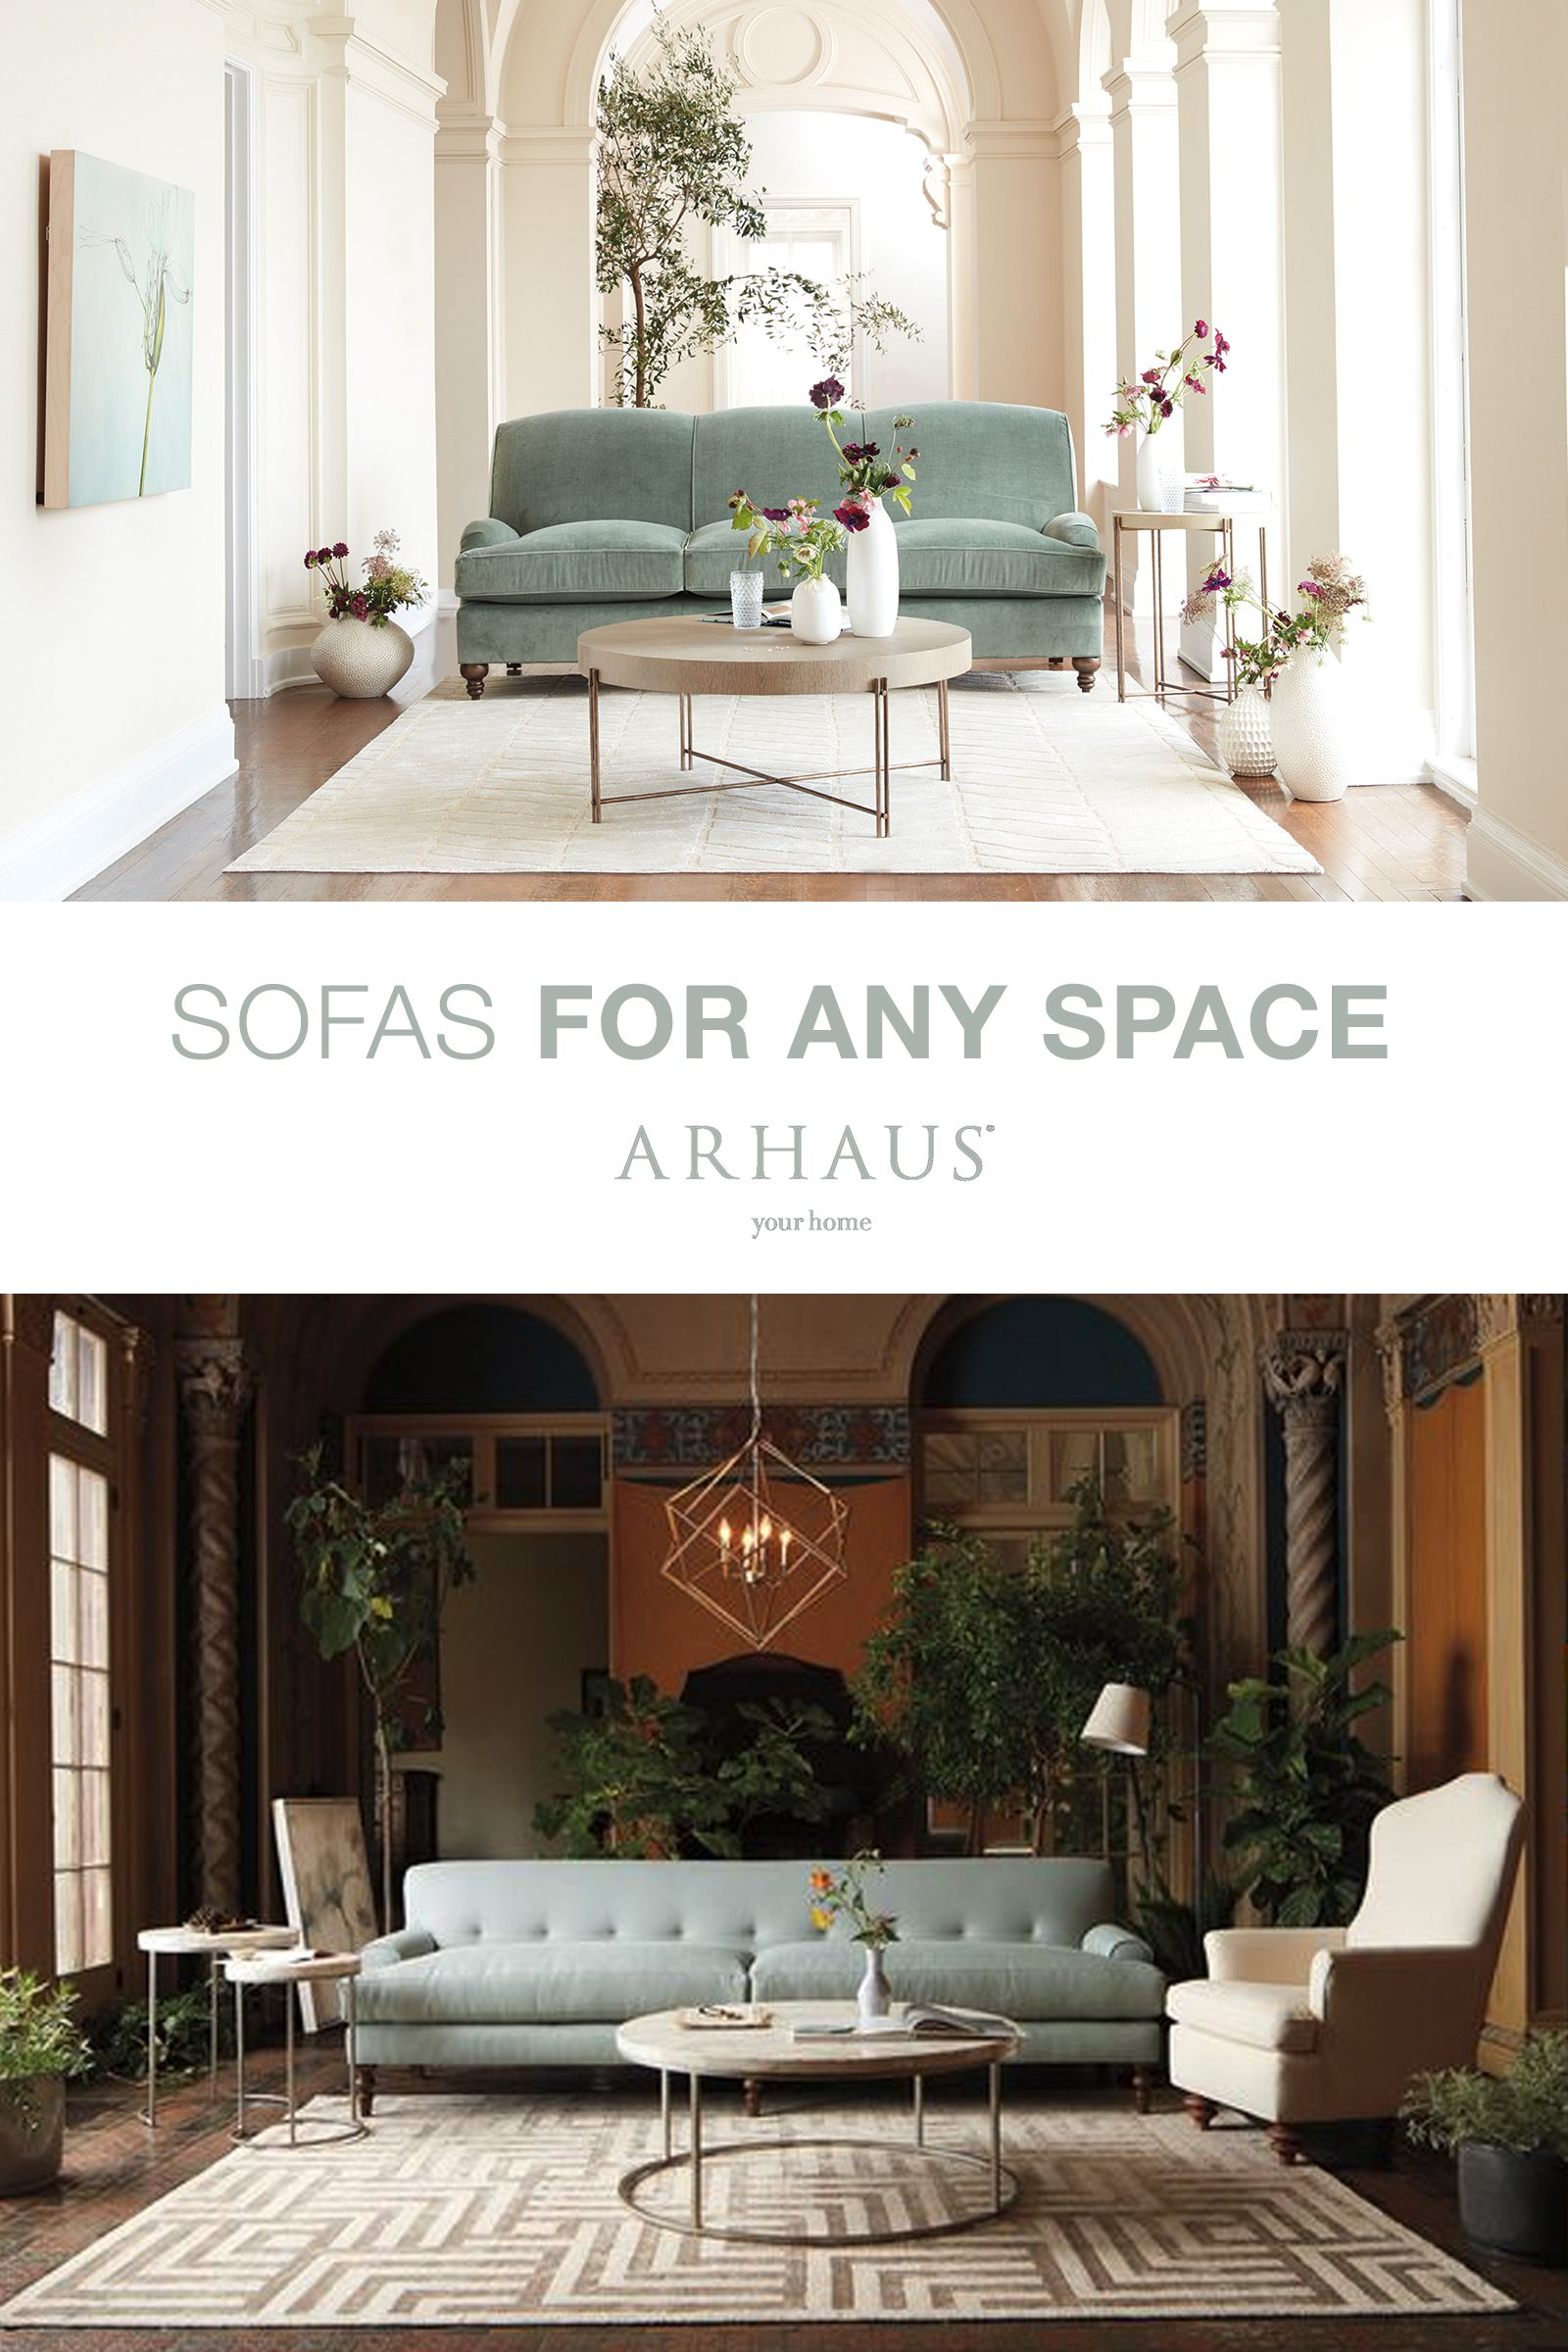 Living Rooms Are Meant To Be Lived In Choose A Sofa That Matches Your Unique Style And Needs To Create The Perfect Environment For Sp Living Spaces In 2019